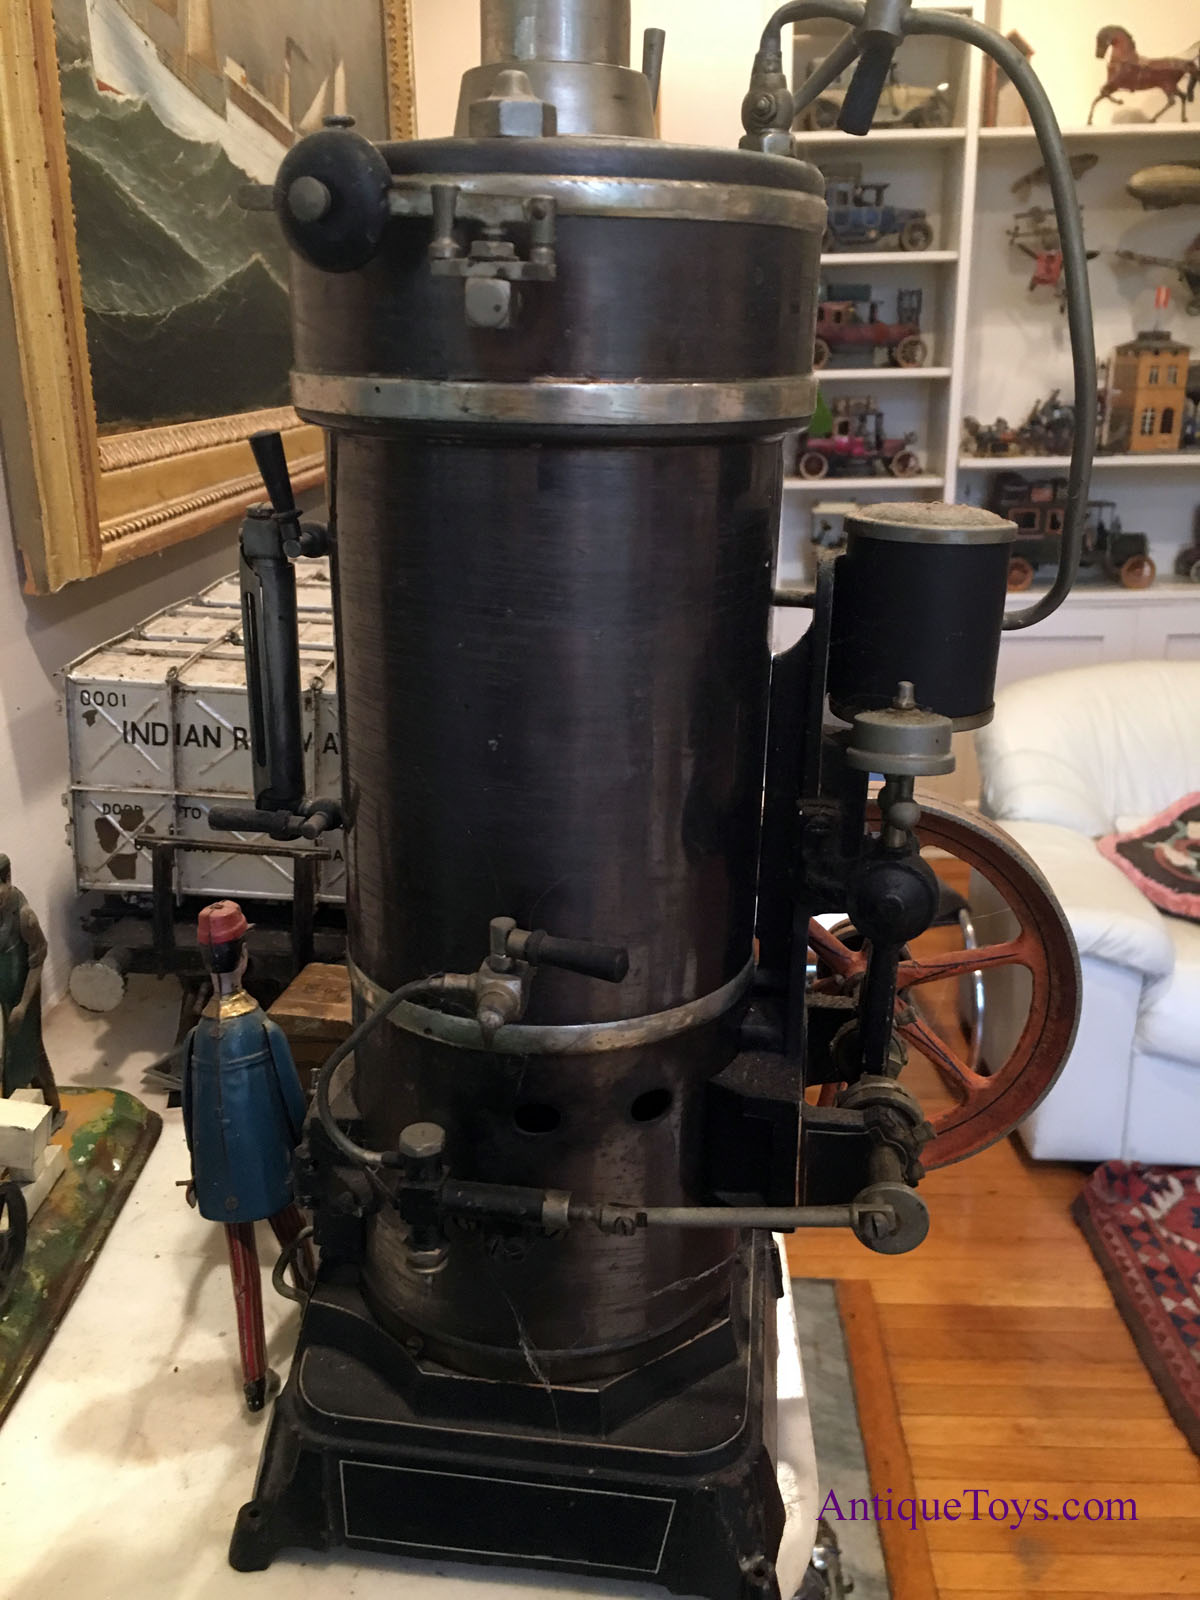 Banks For Sale >> Bing, G.B.N., Steam Engine Extra Large for Sale - Antique ...